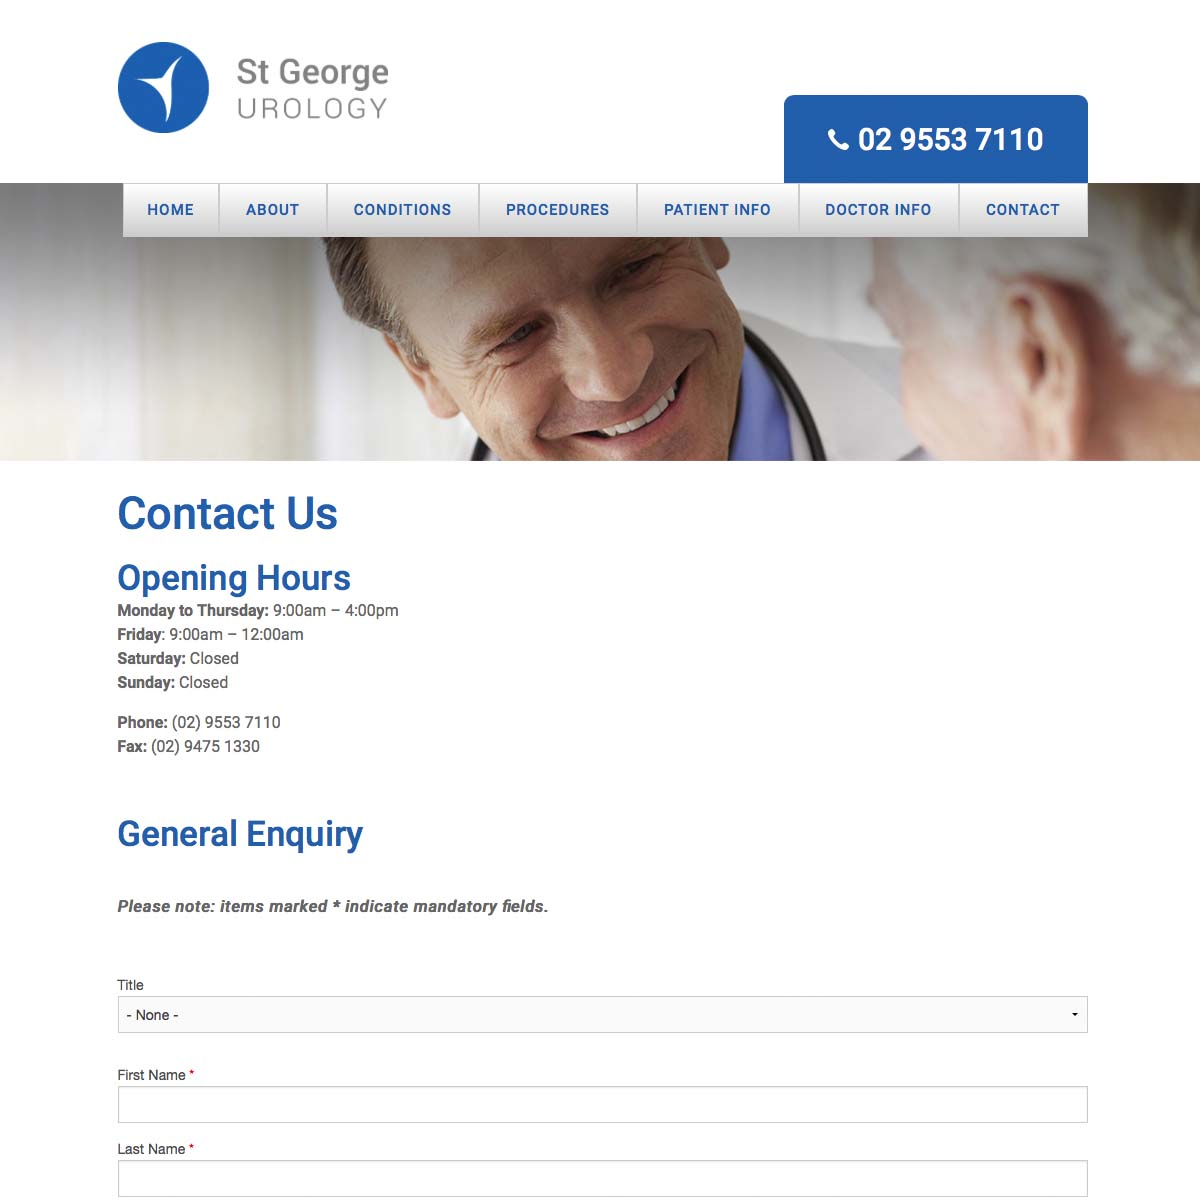 St George Urology Contact Us